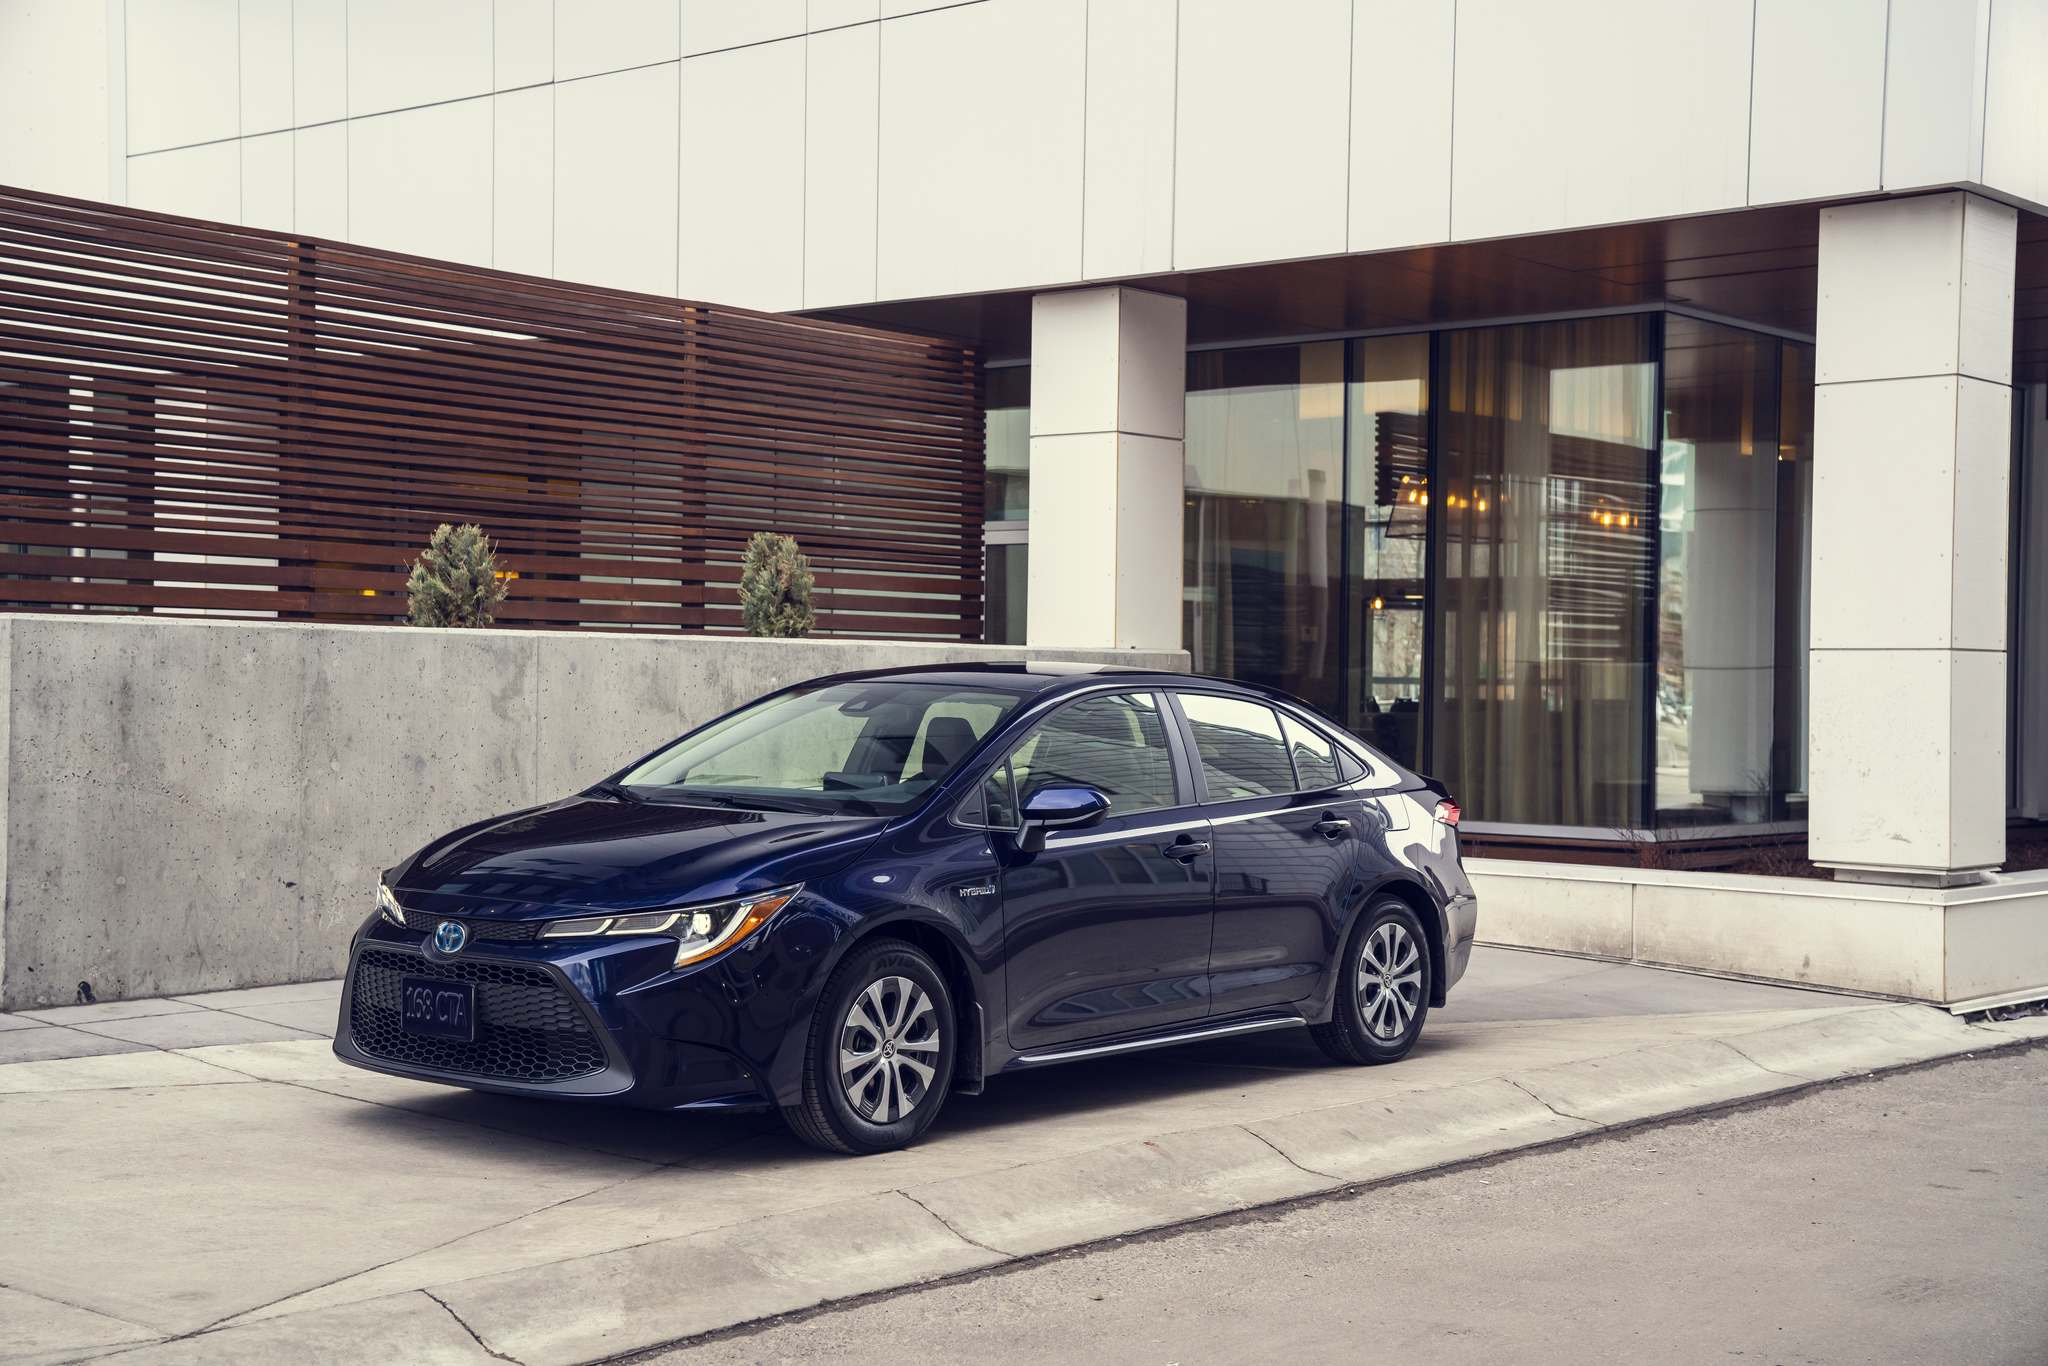 SUPPLIEDThe 2020 Toyota Corolla Hybrid might not deliver a high-performance jolt, but it should provide the reliability and durability that have made the venerable model a popular vehicle for decades.